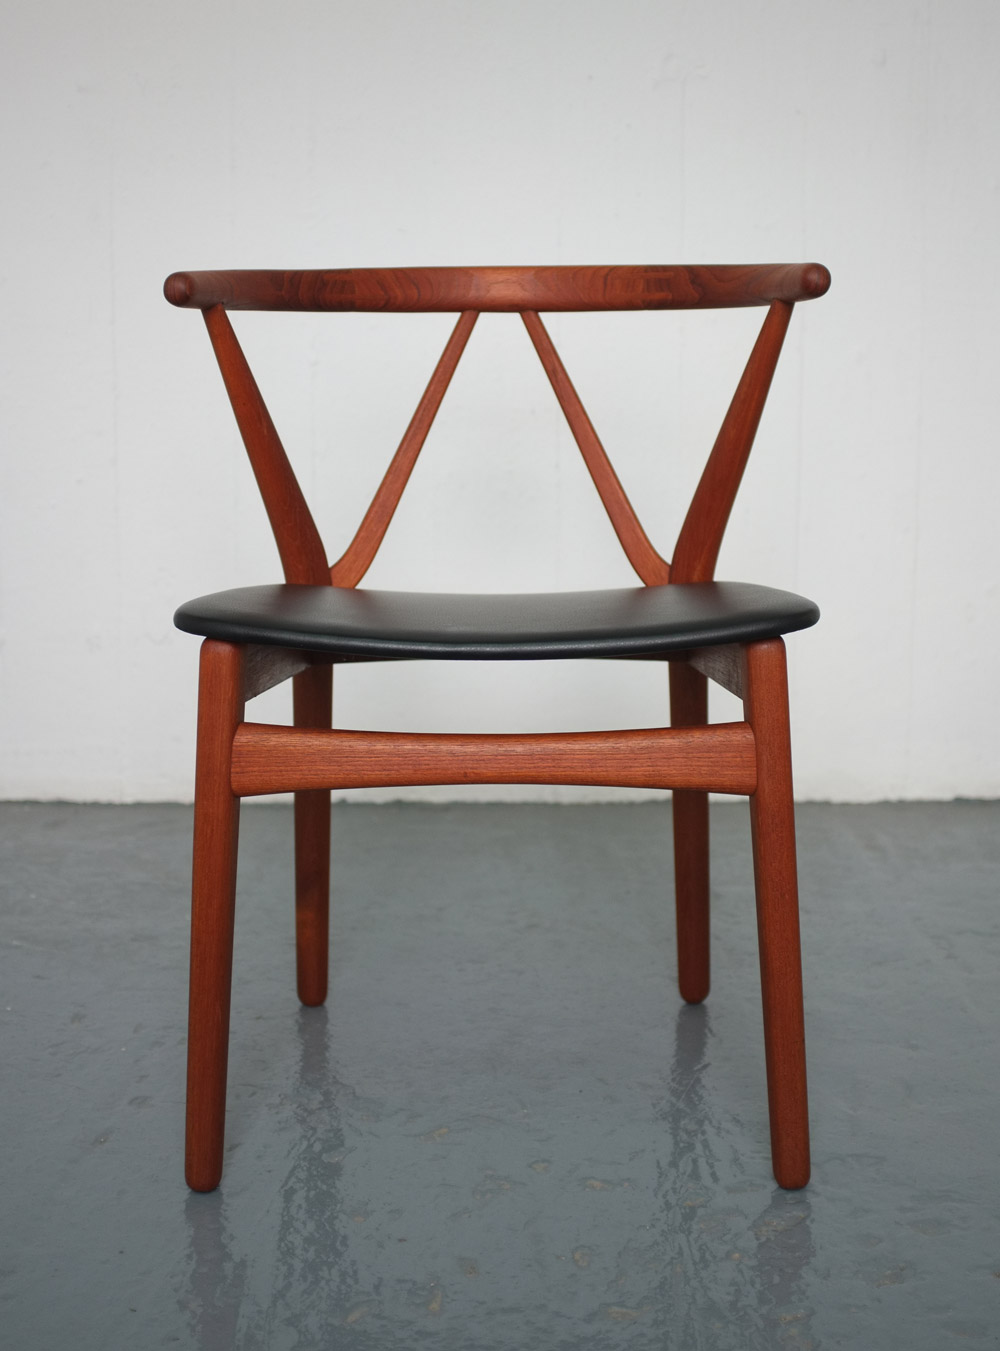 Vintage danish dining chairs by Henning Kjaernulf